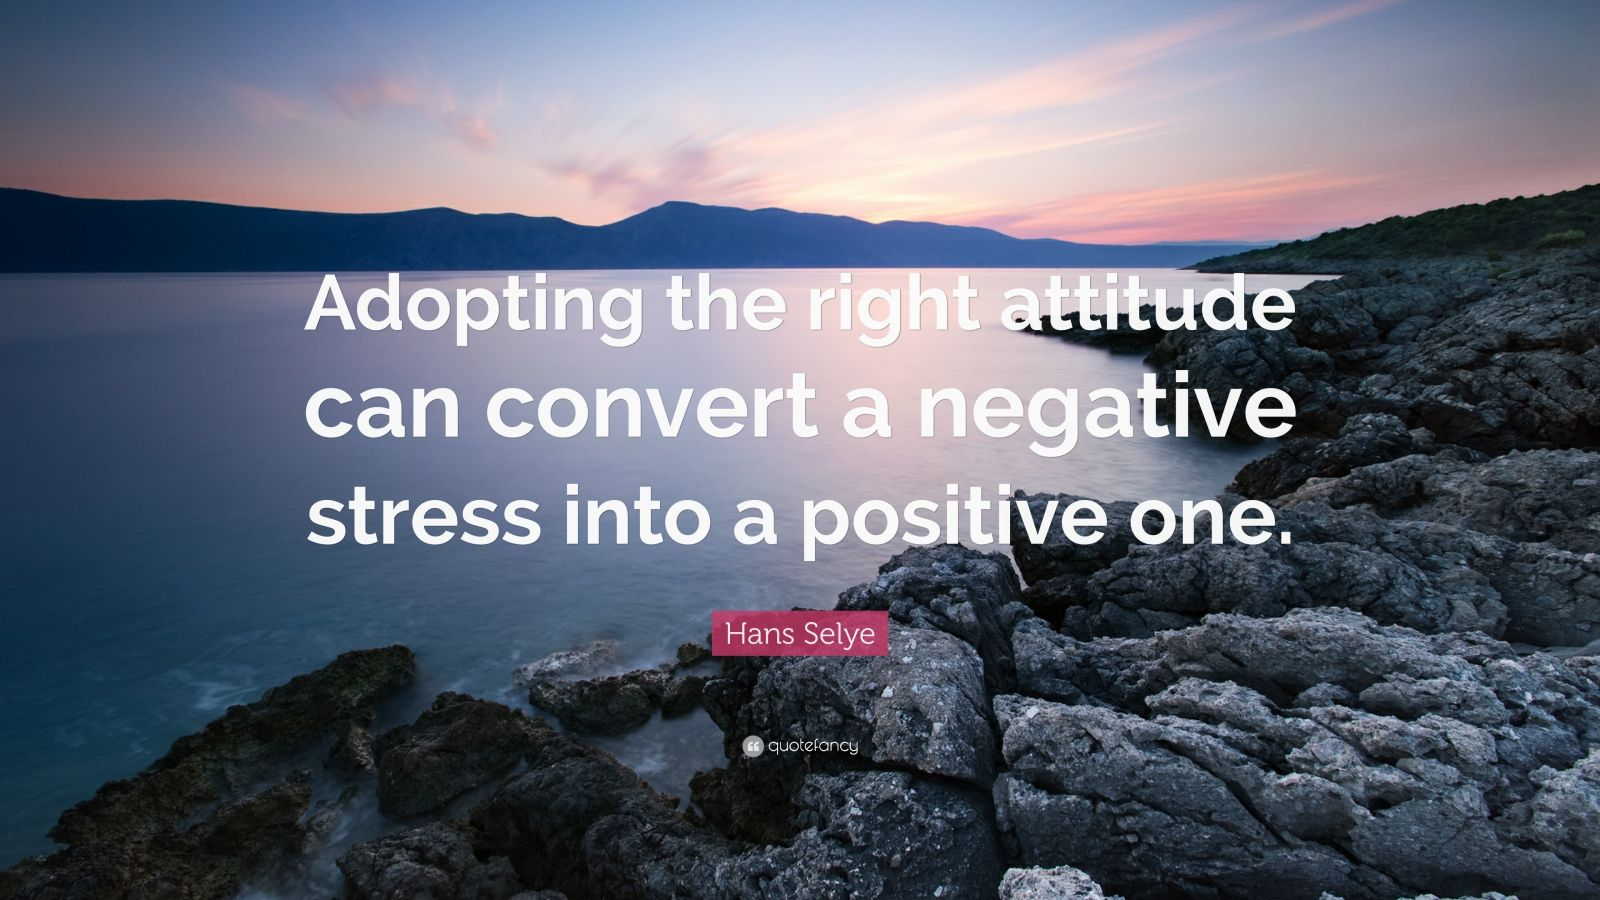 positive attitude essays essay on attitude inspiring video on  positive quotes quotefancy positive quotes adopting the right attitude can convert a negative stress into a